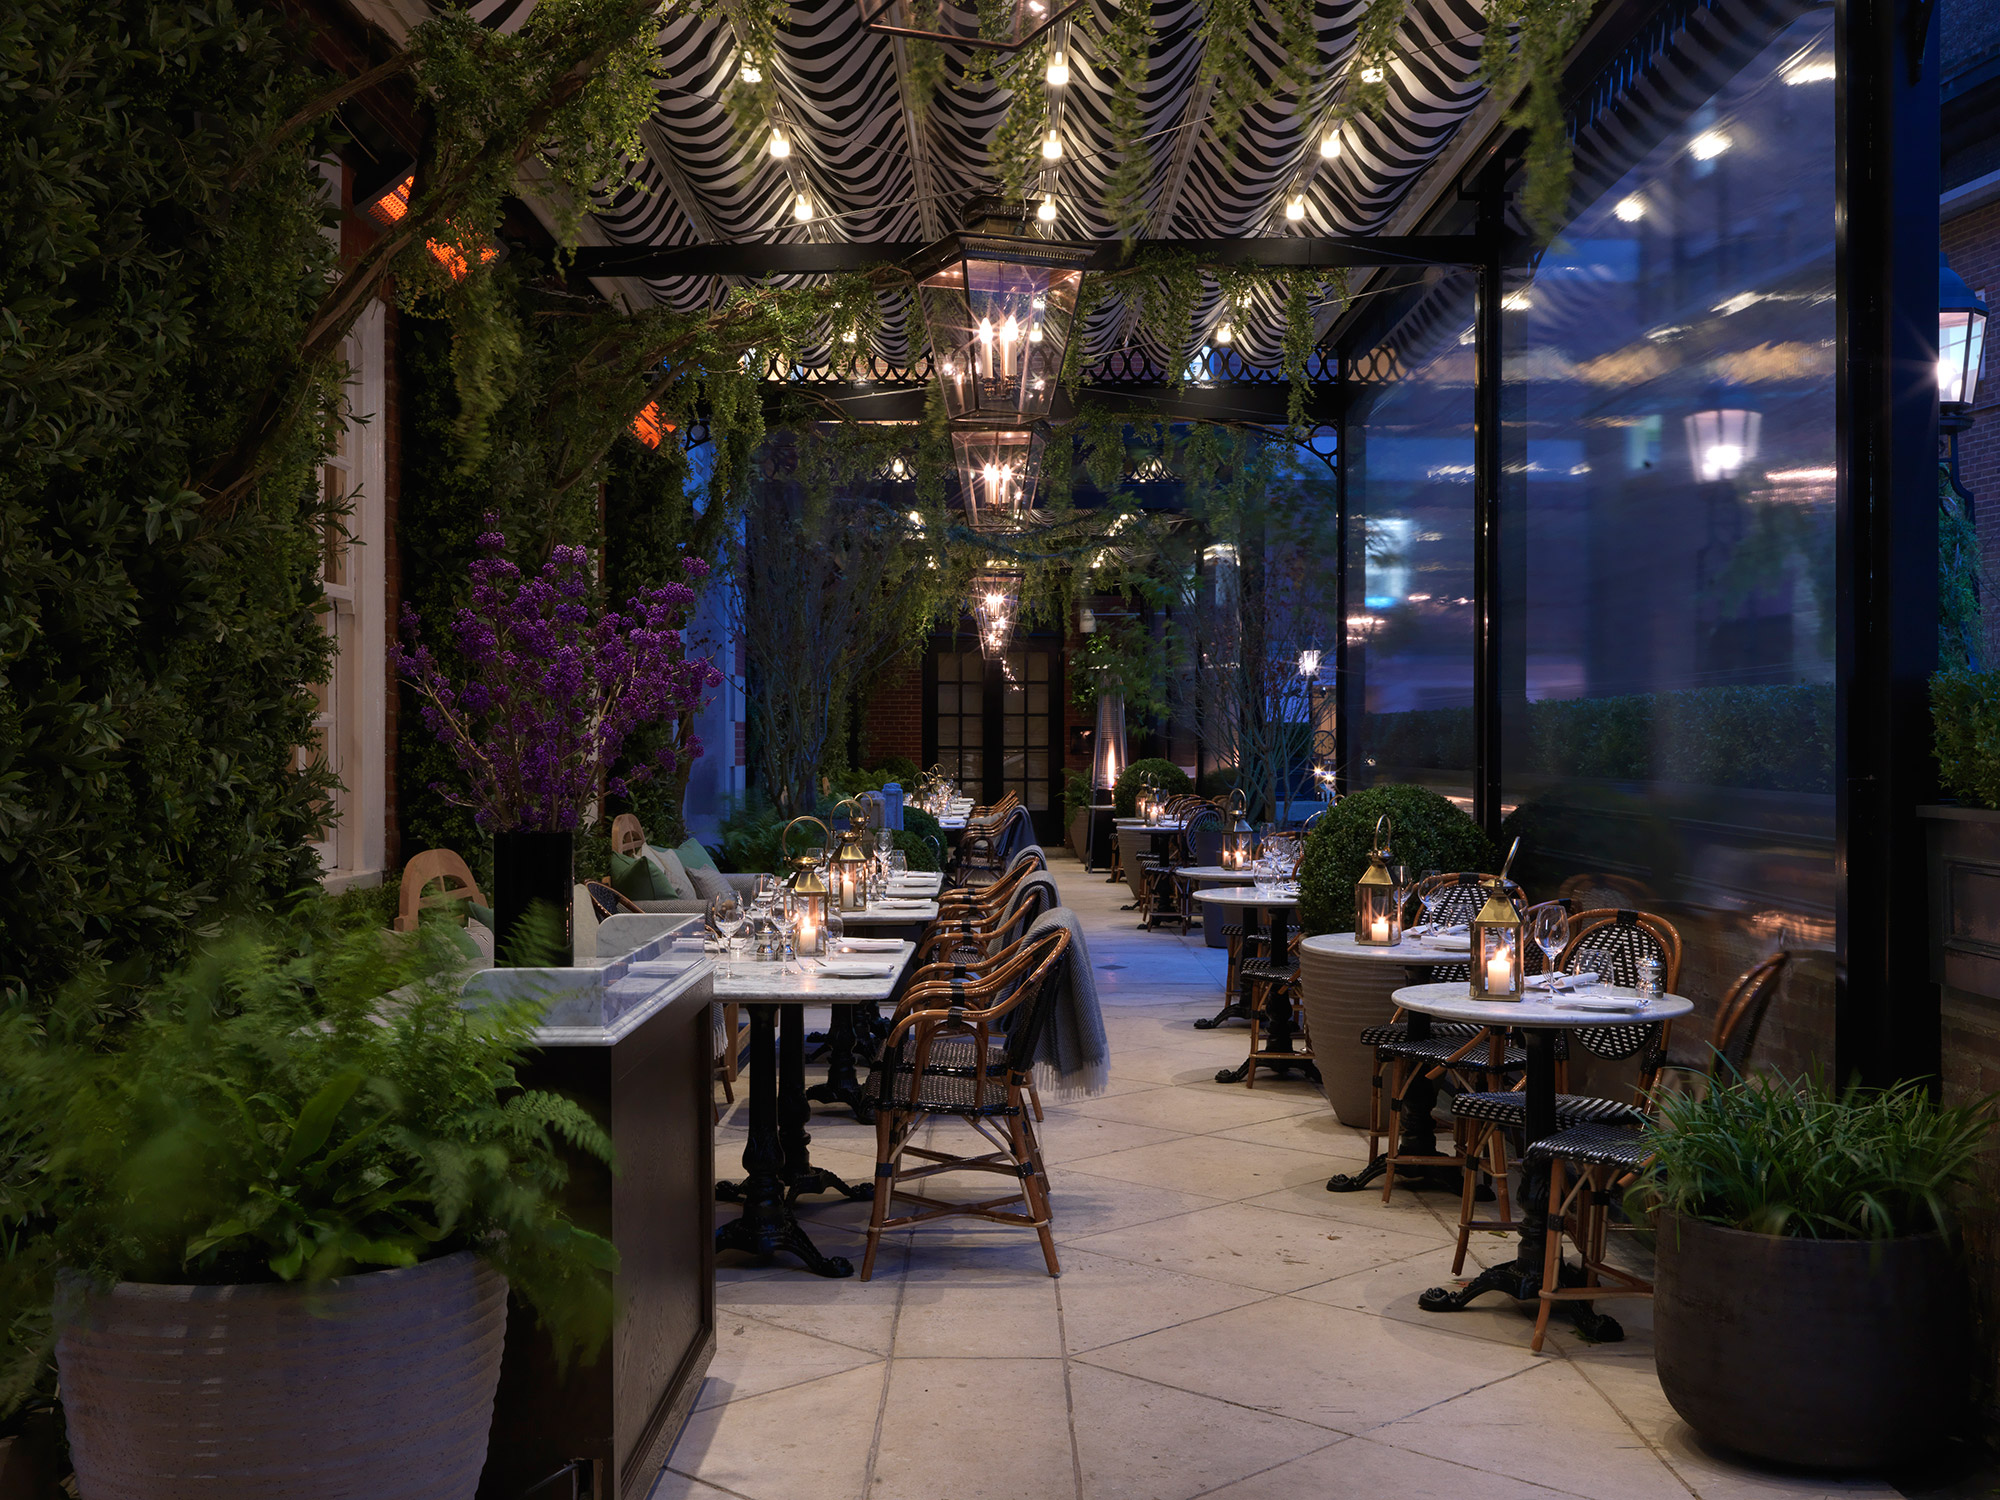 dalloway terrace to open in the book capital of the